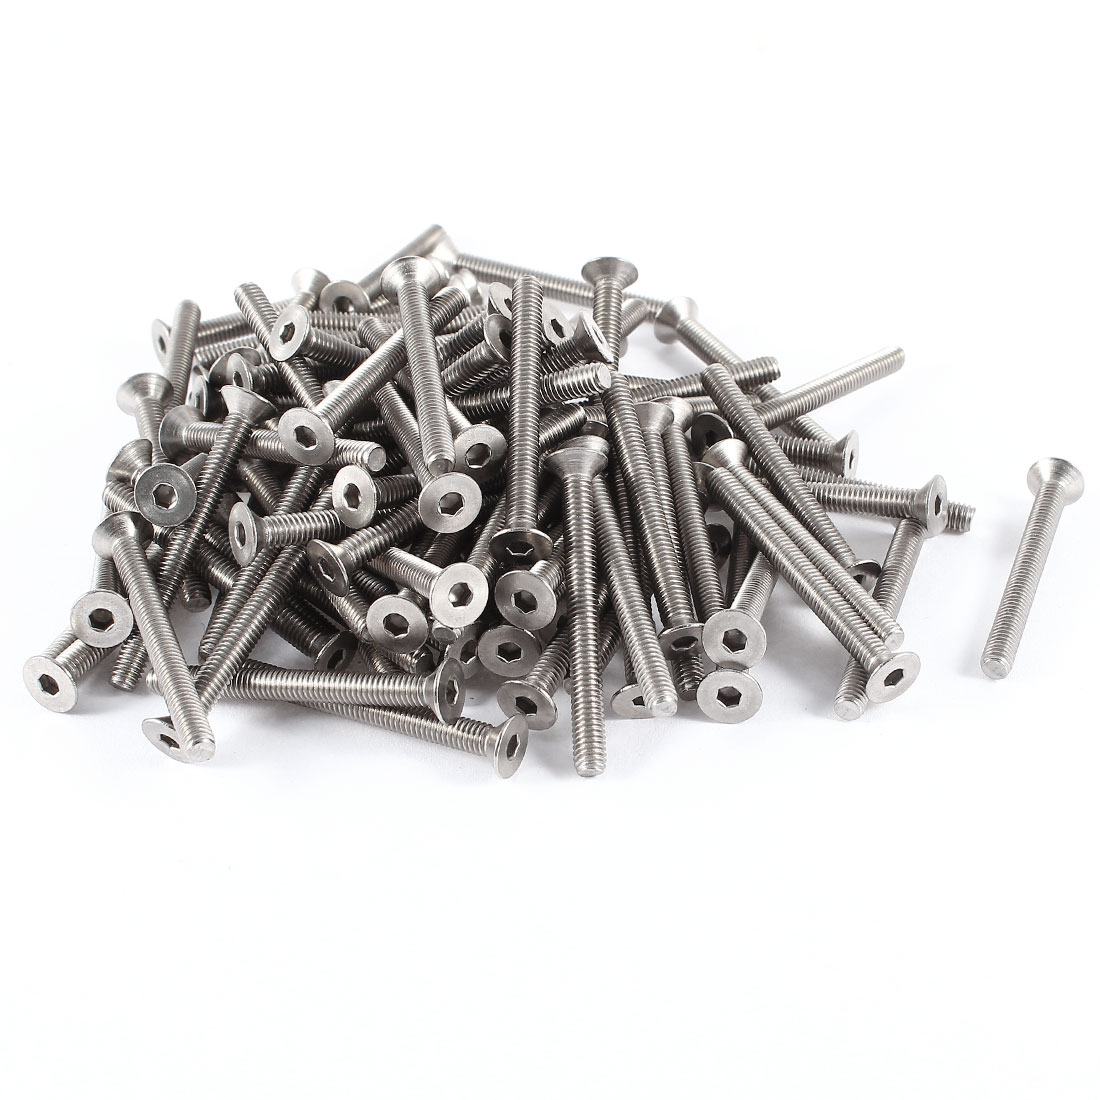 100 Pcs 304HC Stainless Steel Countersunk Hex Flat Head Bolts Screws M4x40mm